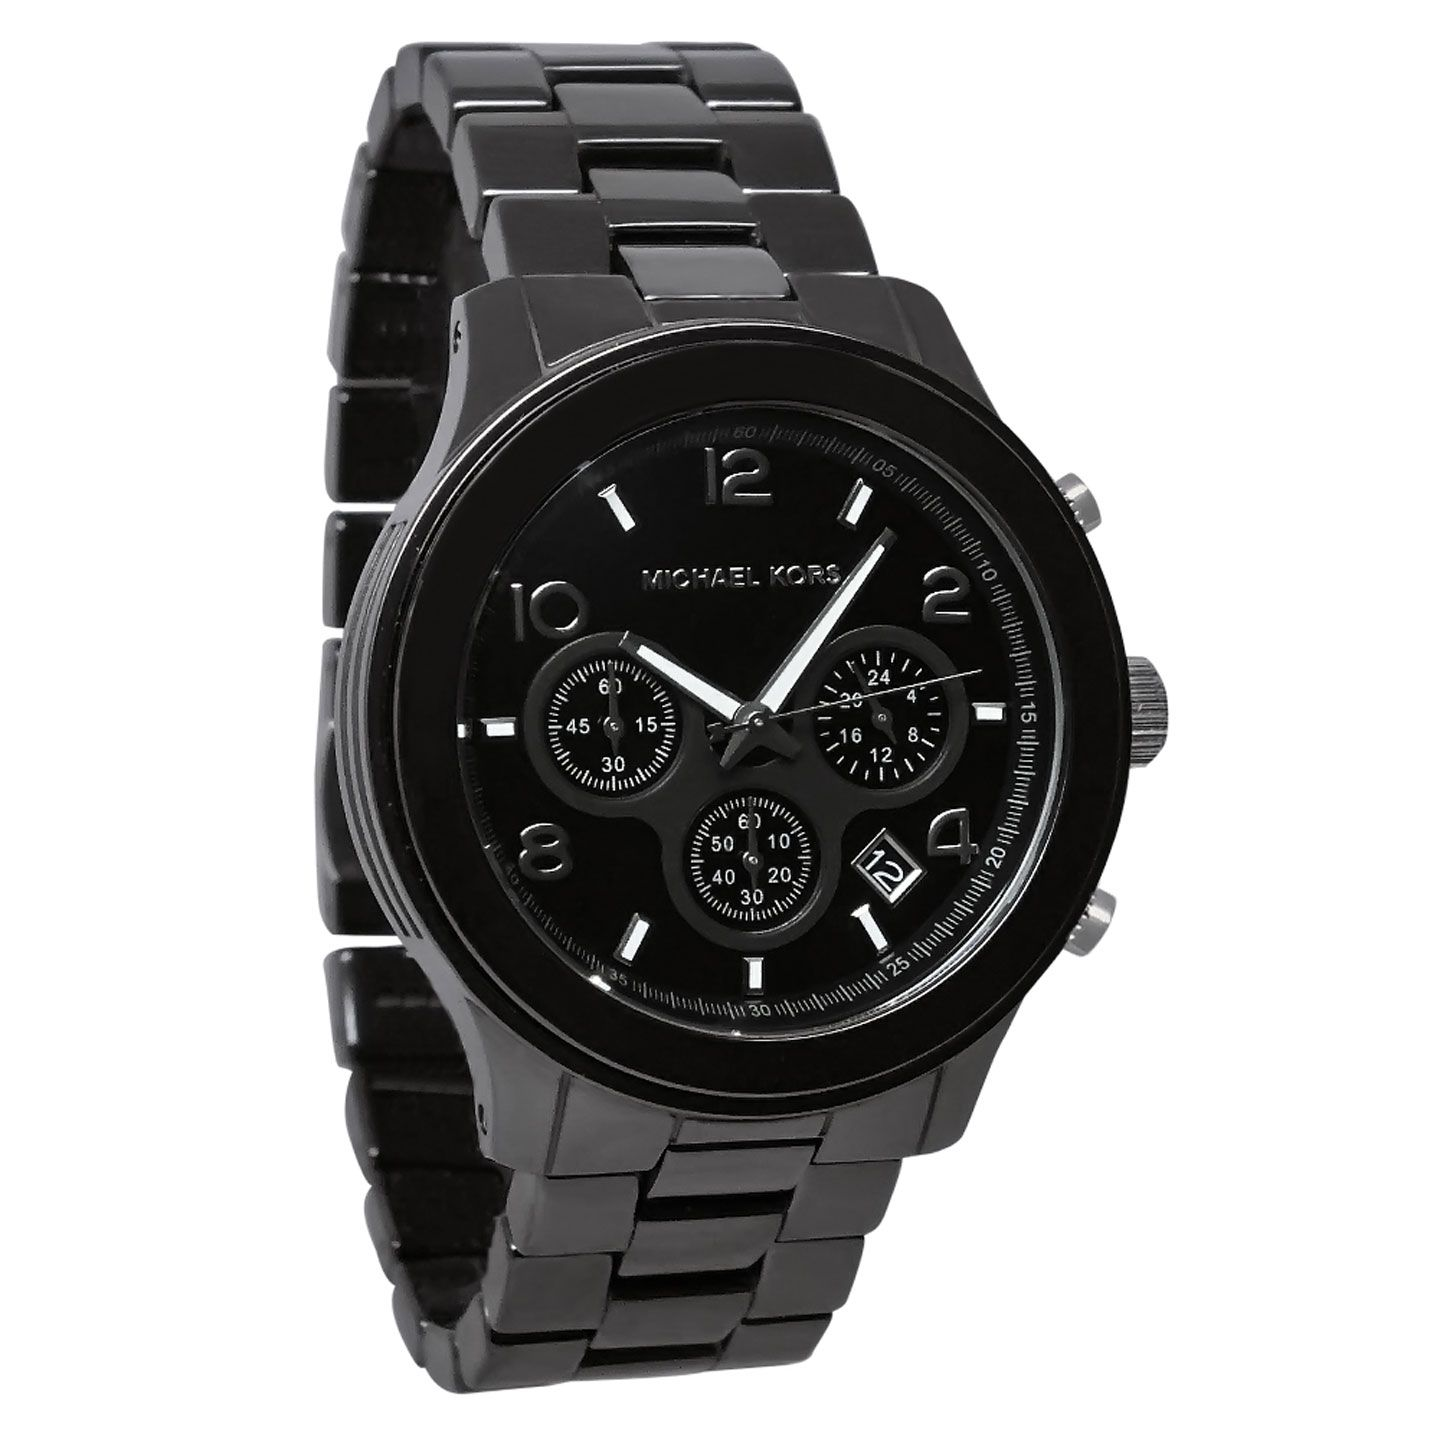 hand watch time images black photo free en seconds watches masculine manly trendy stylish brand